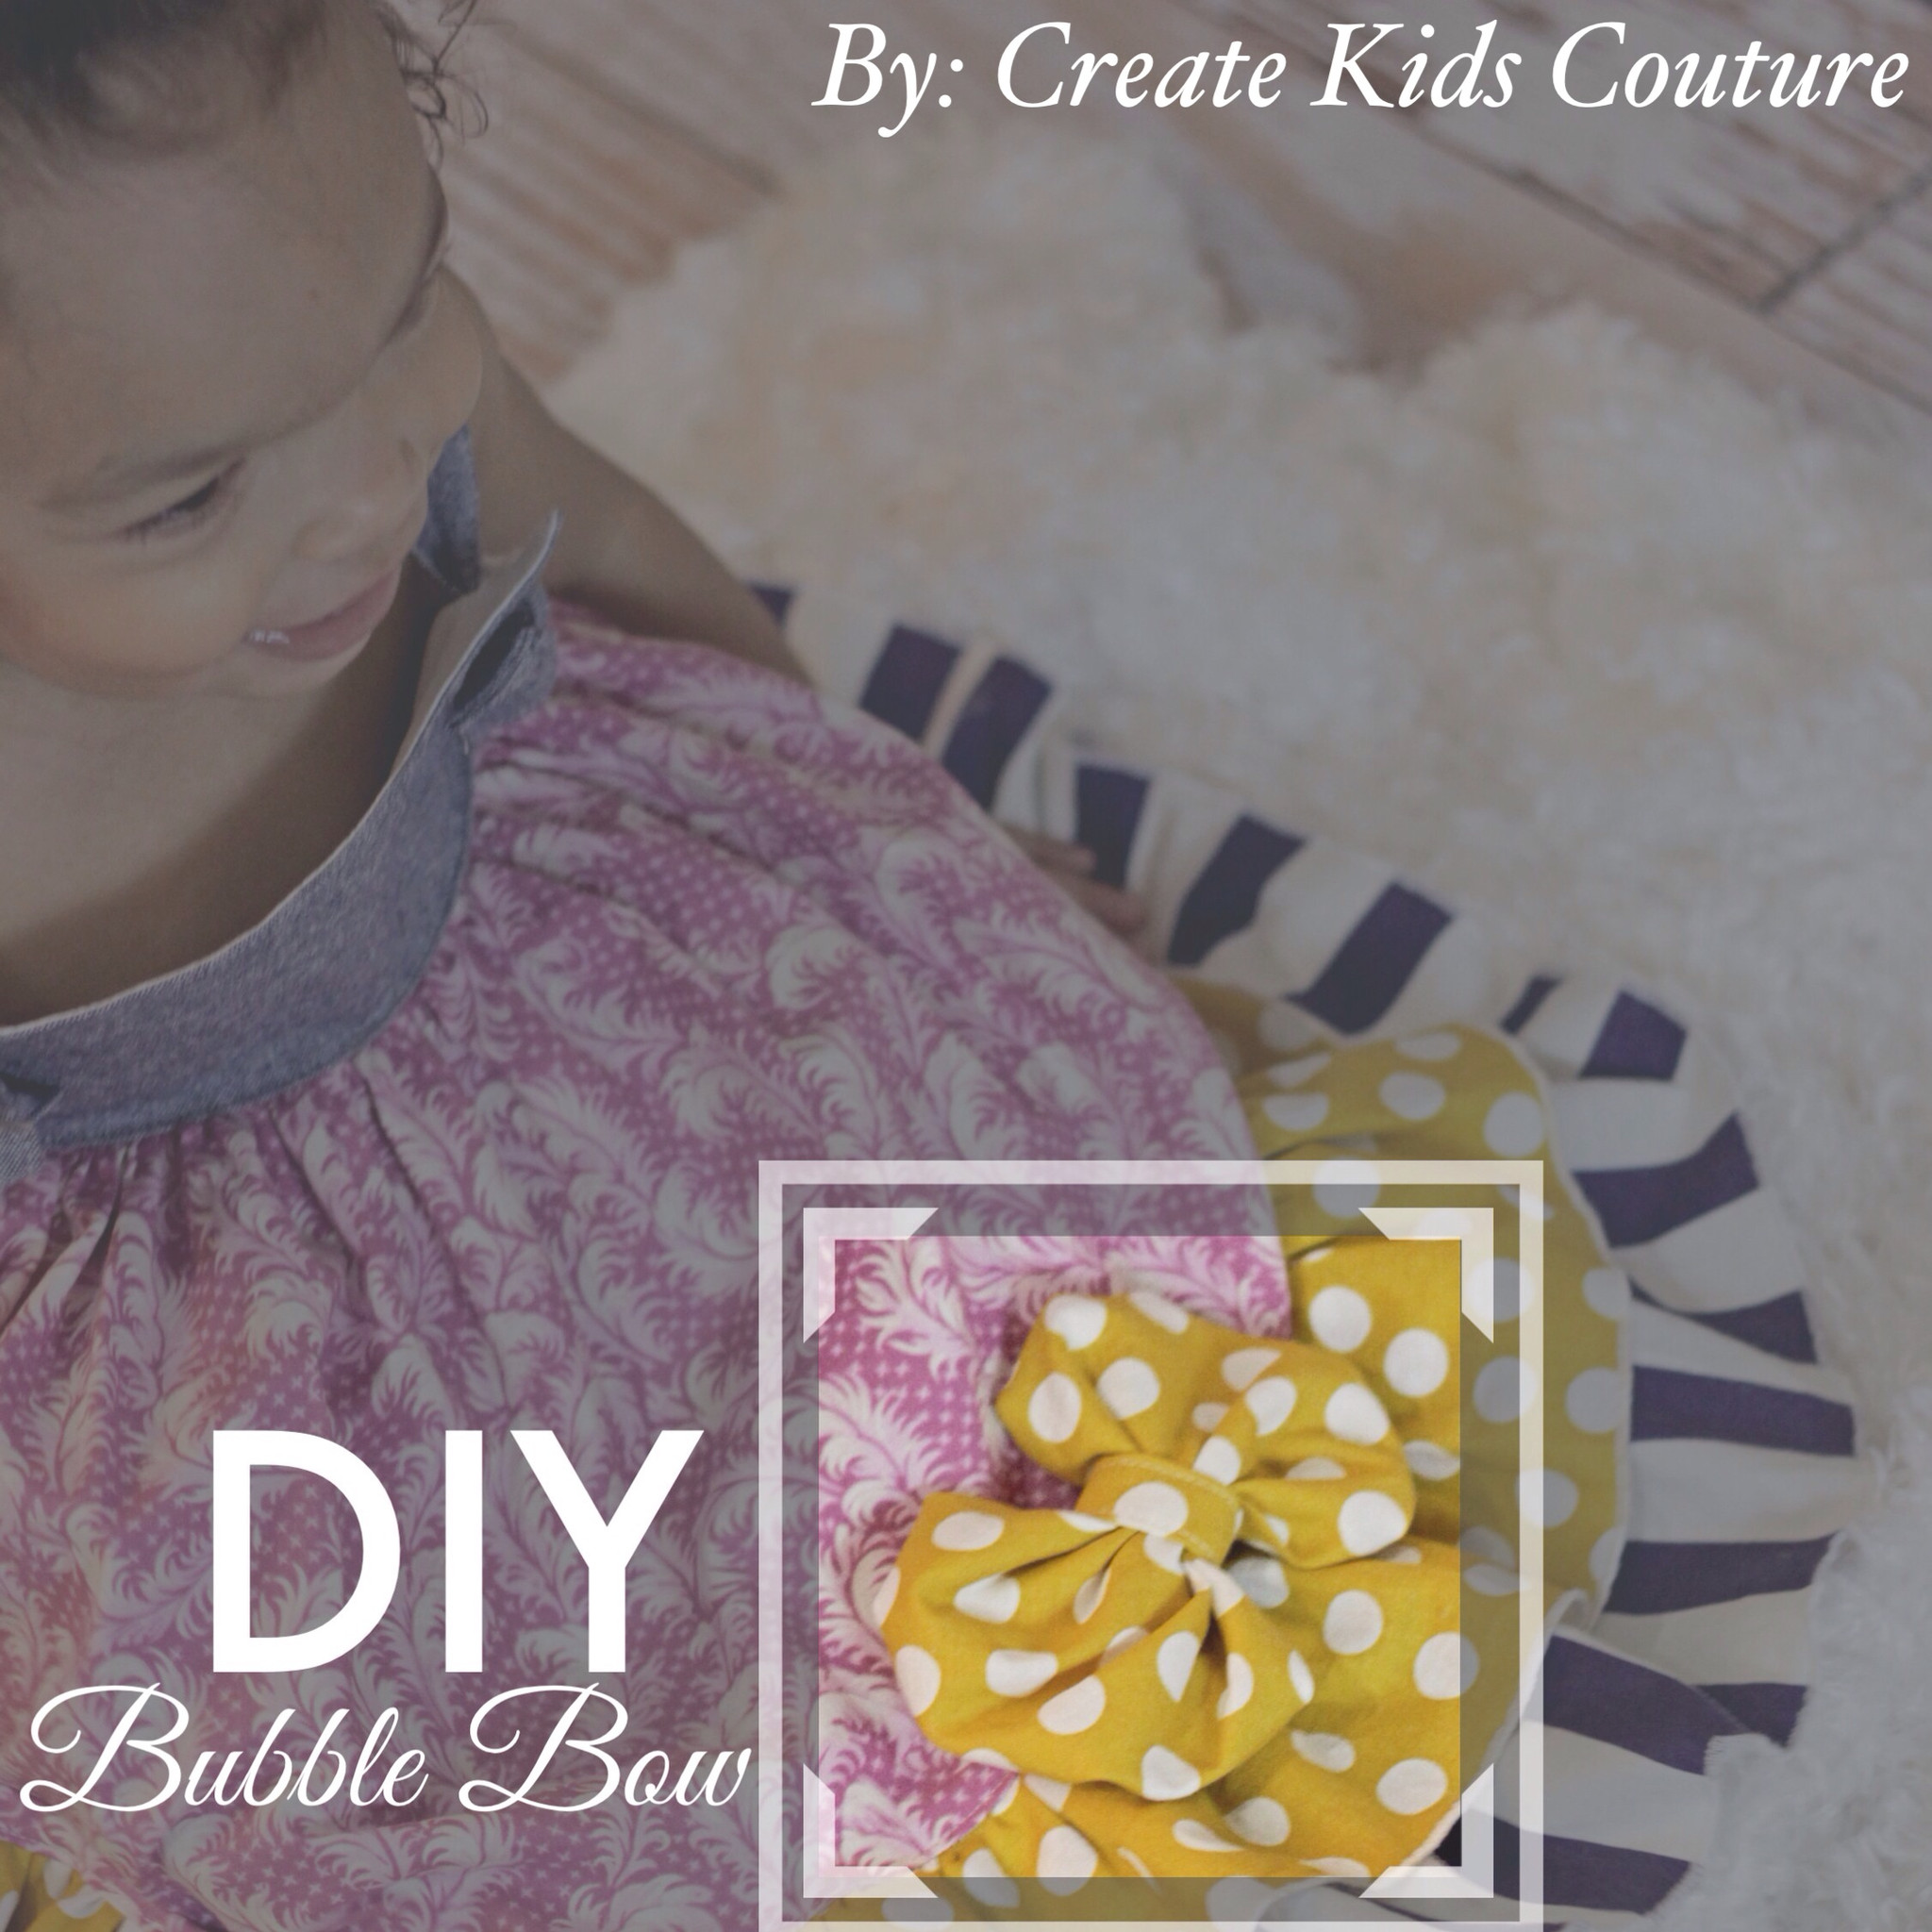 16th Day of Christmas:  DIY Bubble Bow